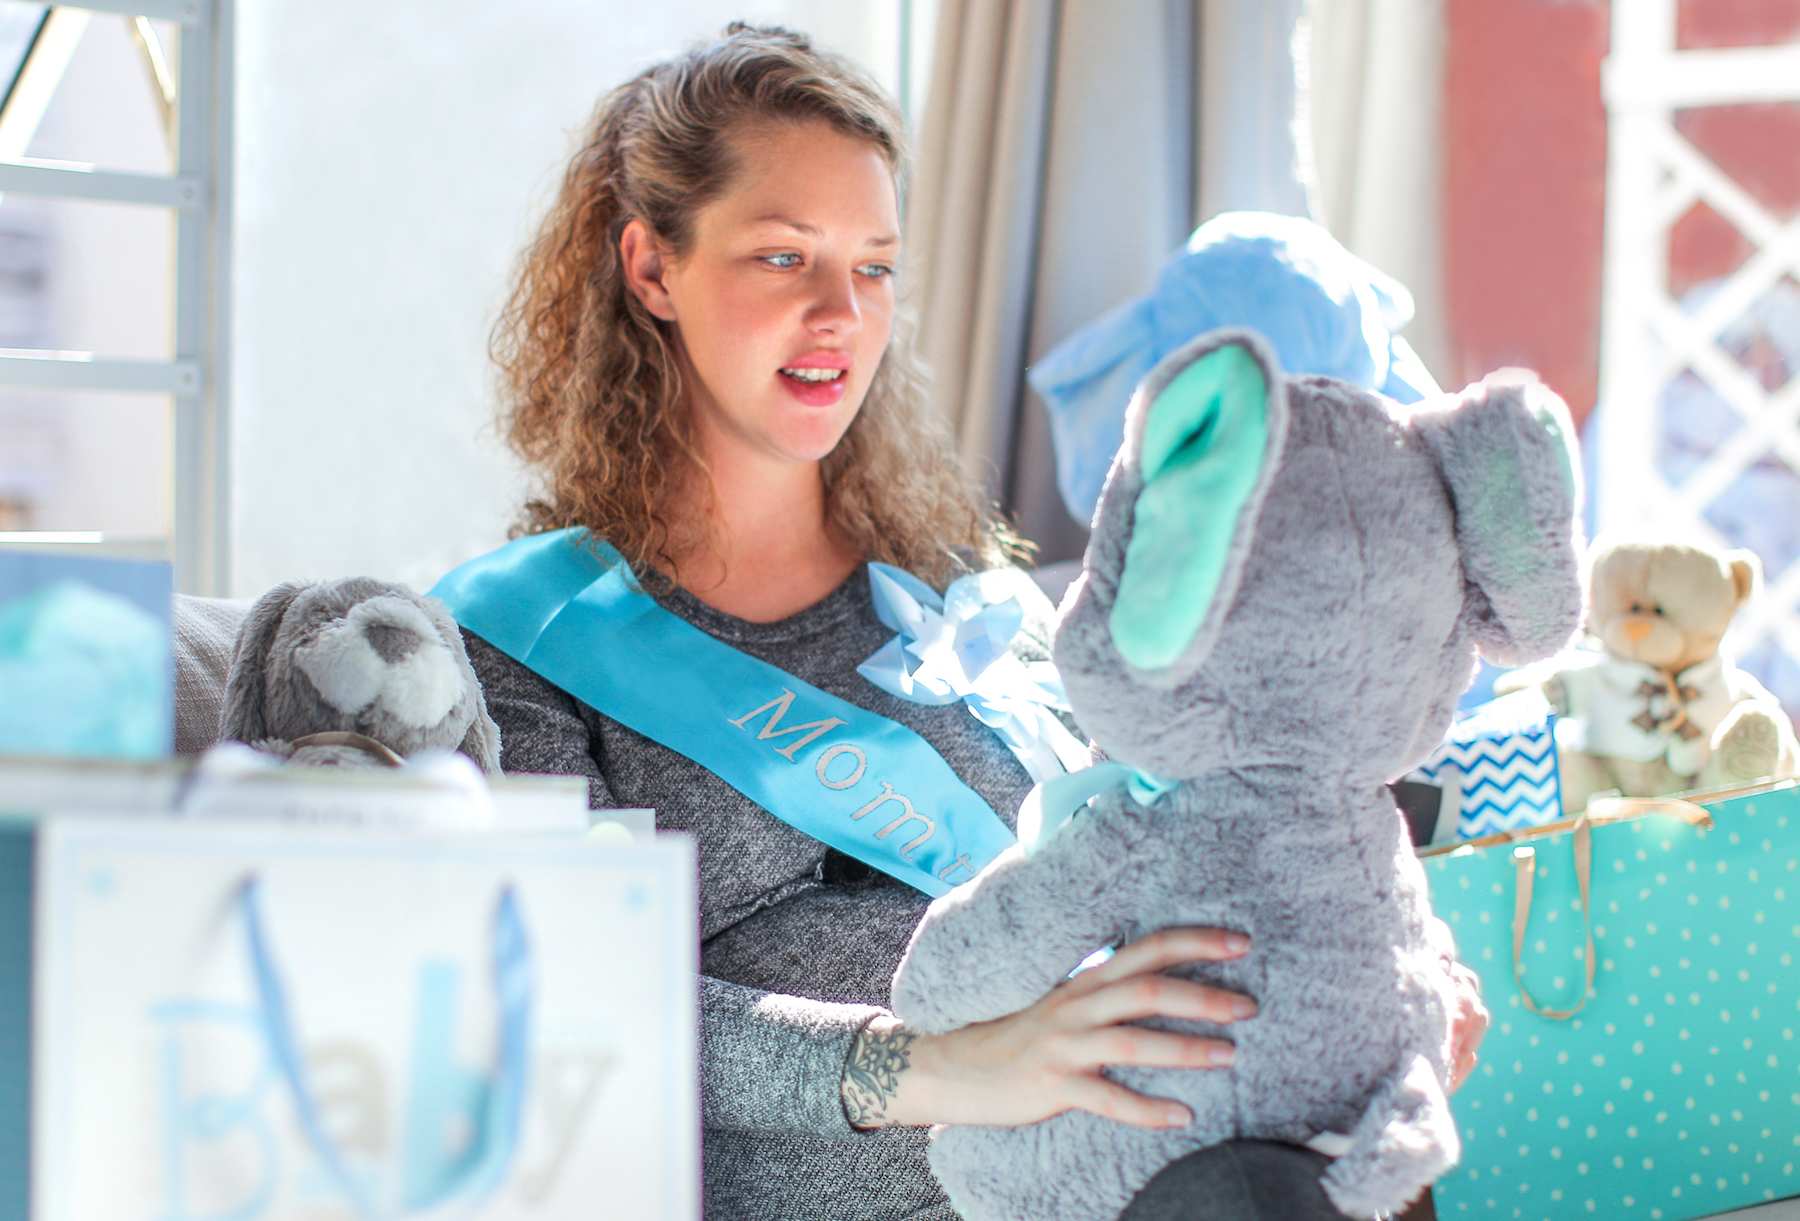 Woman with giant stuffed animal at baby shower